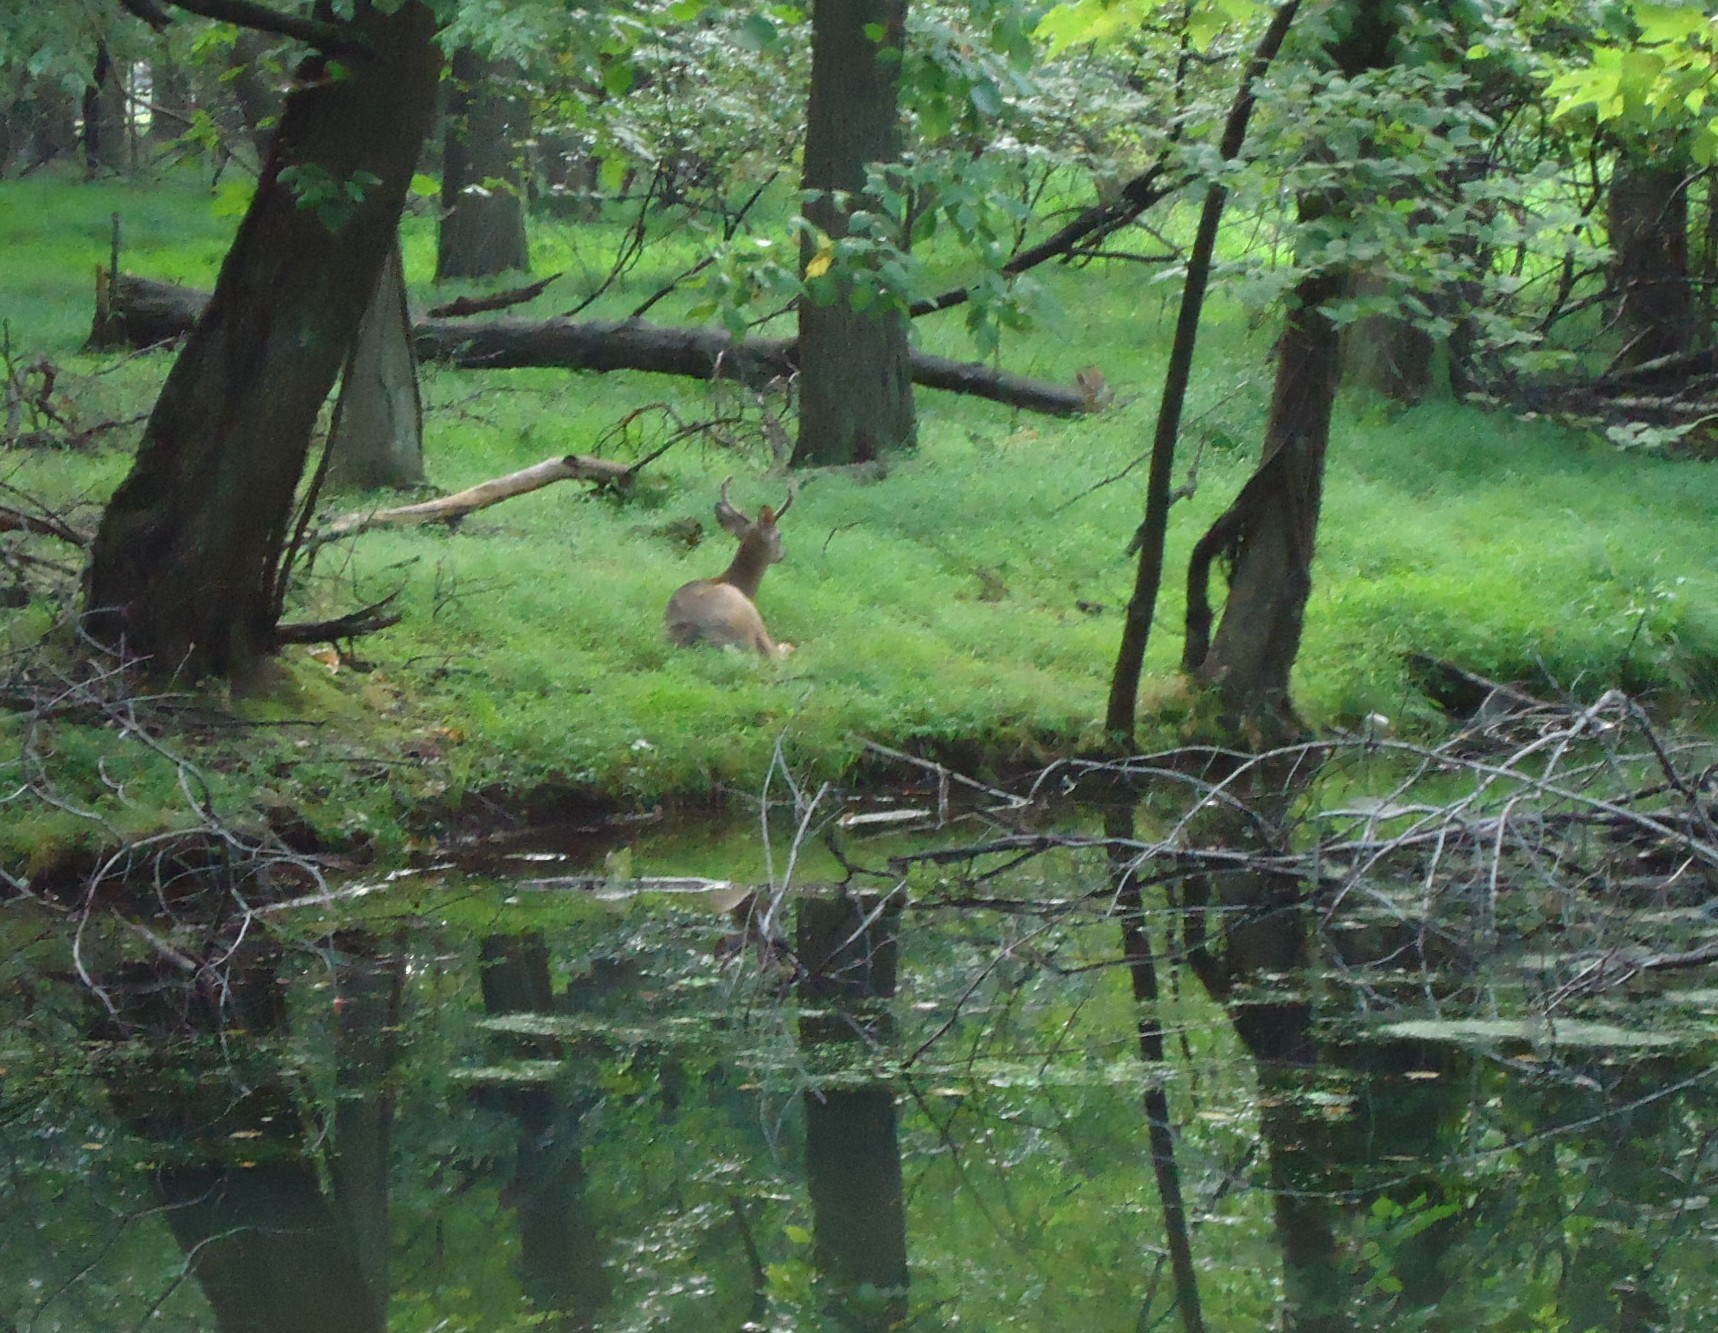 New jersey union county cranford - File Deer Resting In County Park With Stream Near Union County College Cranford Nj